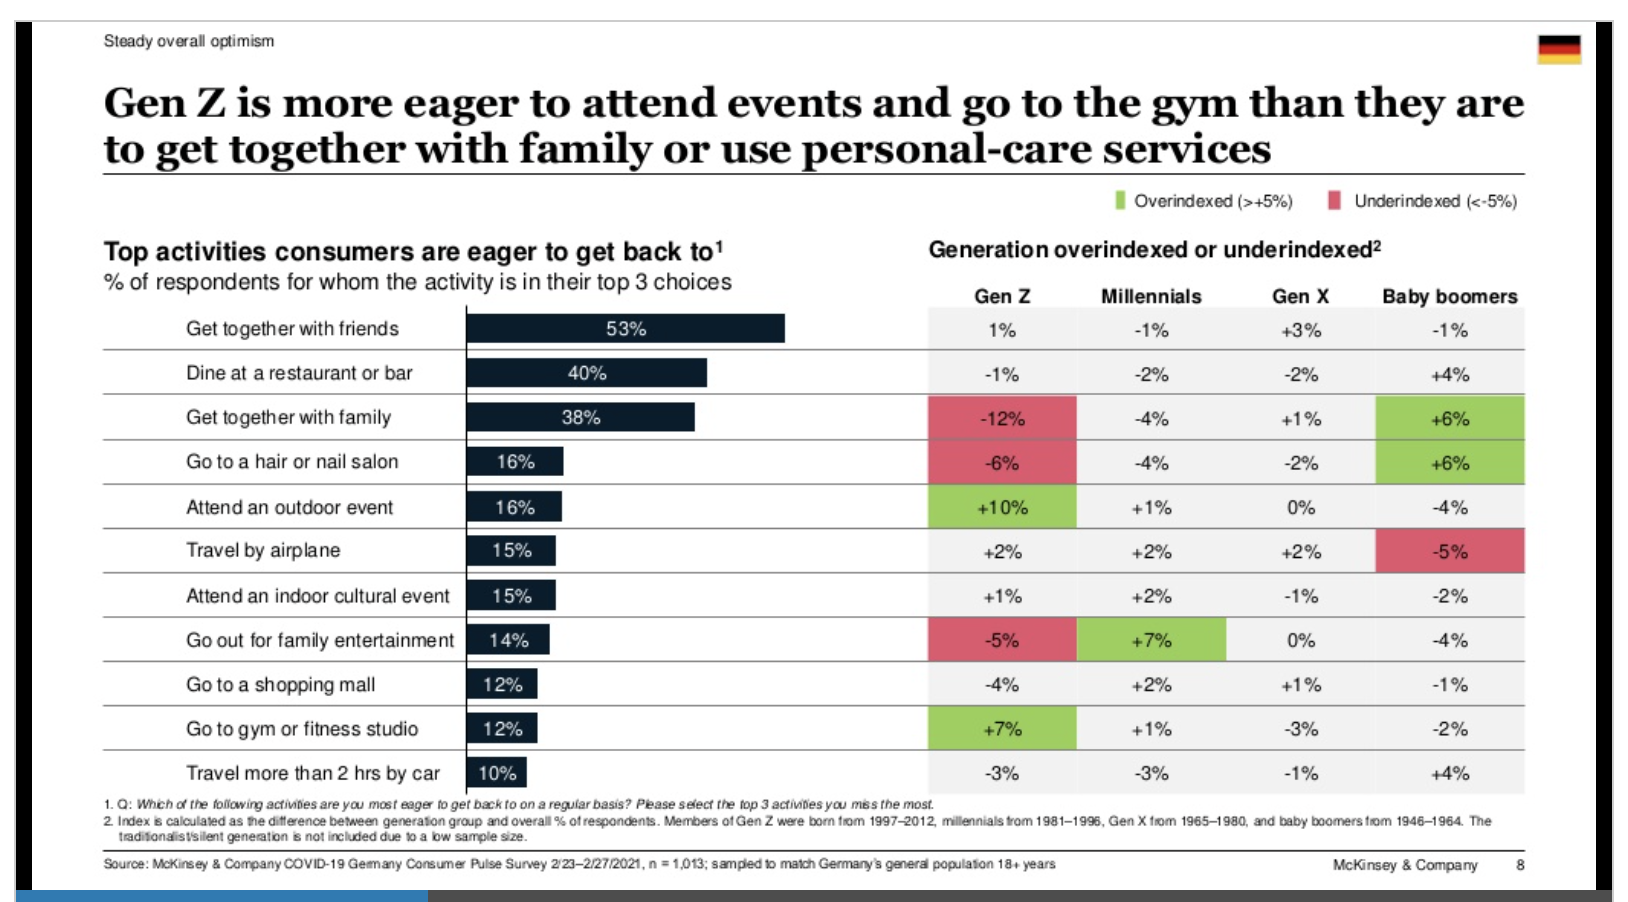 Gen Z is more eager to attend events and go to the gym that to get together with family or use personal-care services